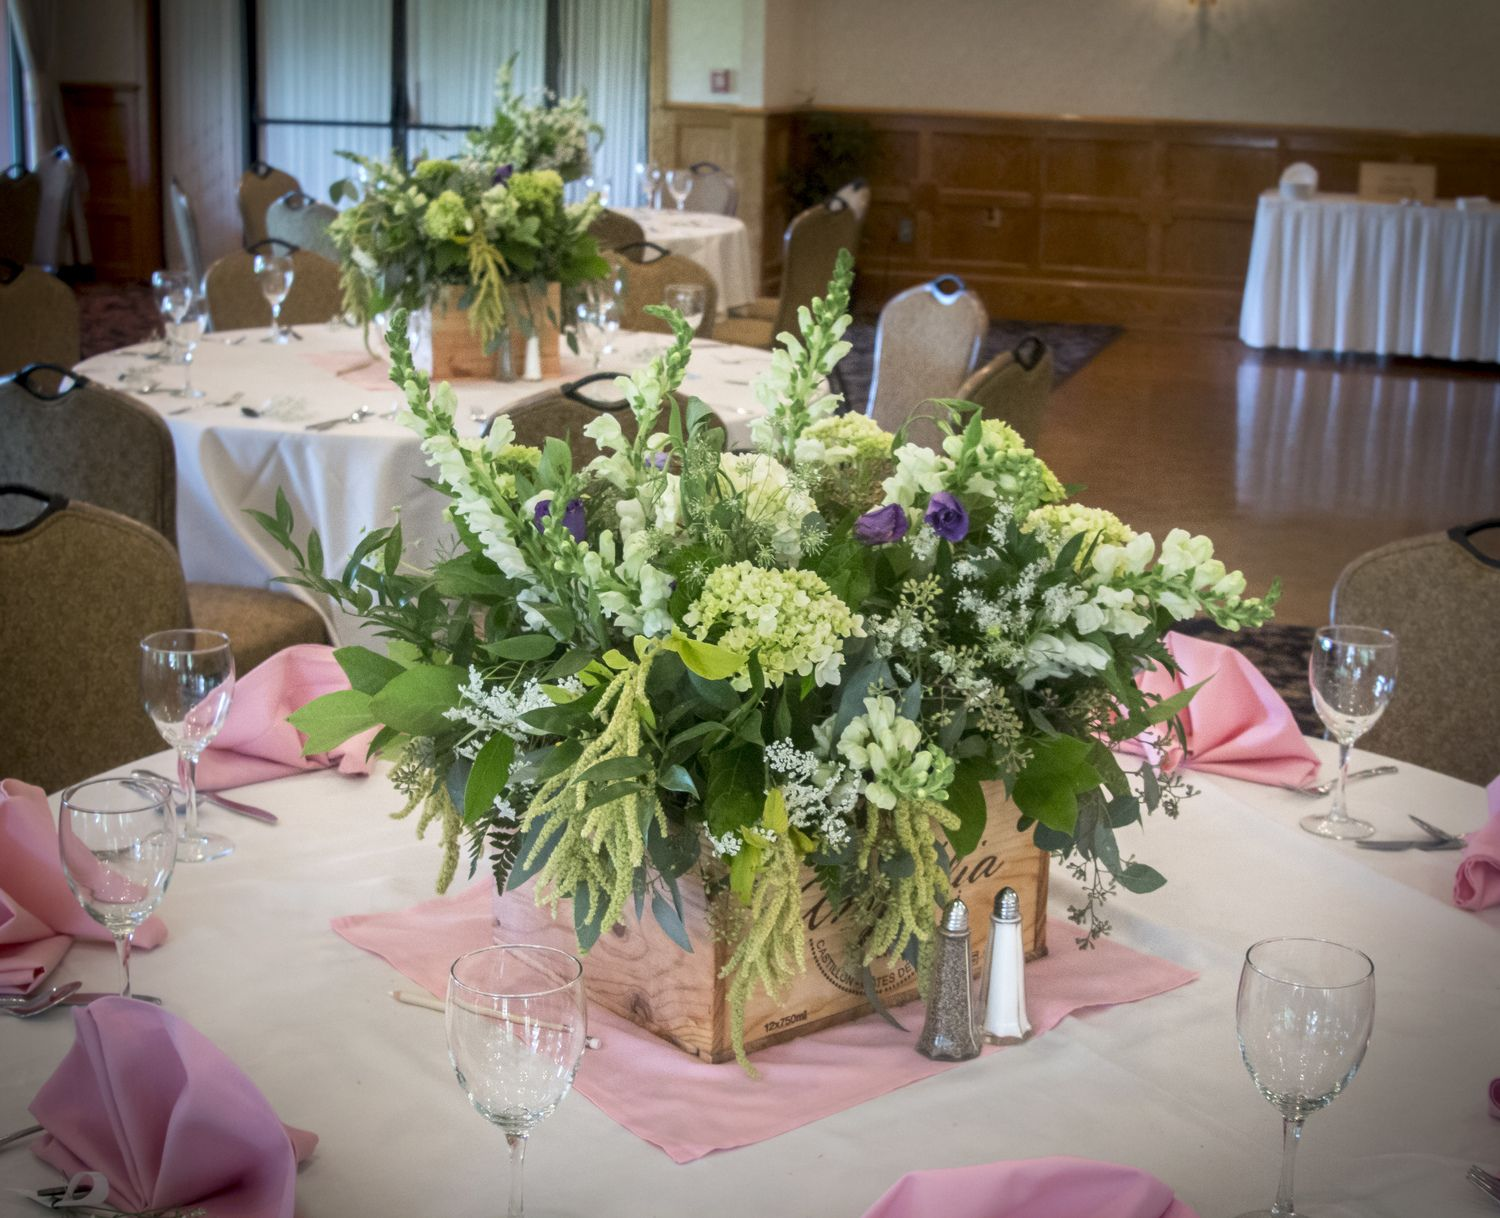 Wine themed florals with hydrangea, roses, snapdraggon flowers.